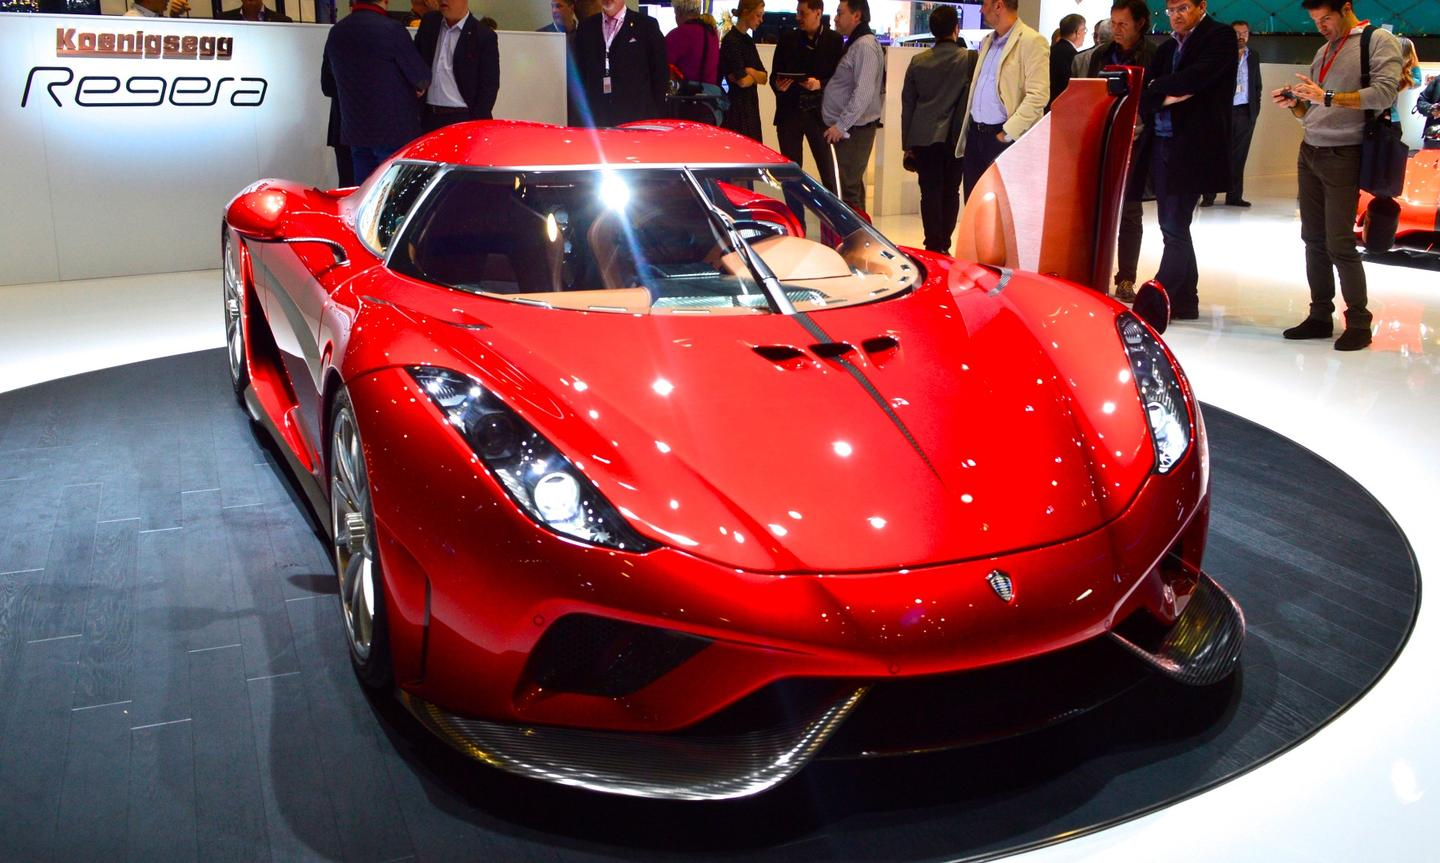 Koenigsegg debuts the production Regera at the 2016 Geneva Motor Show